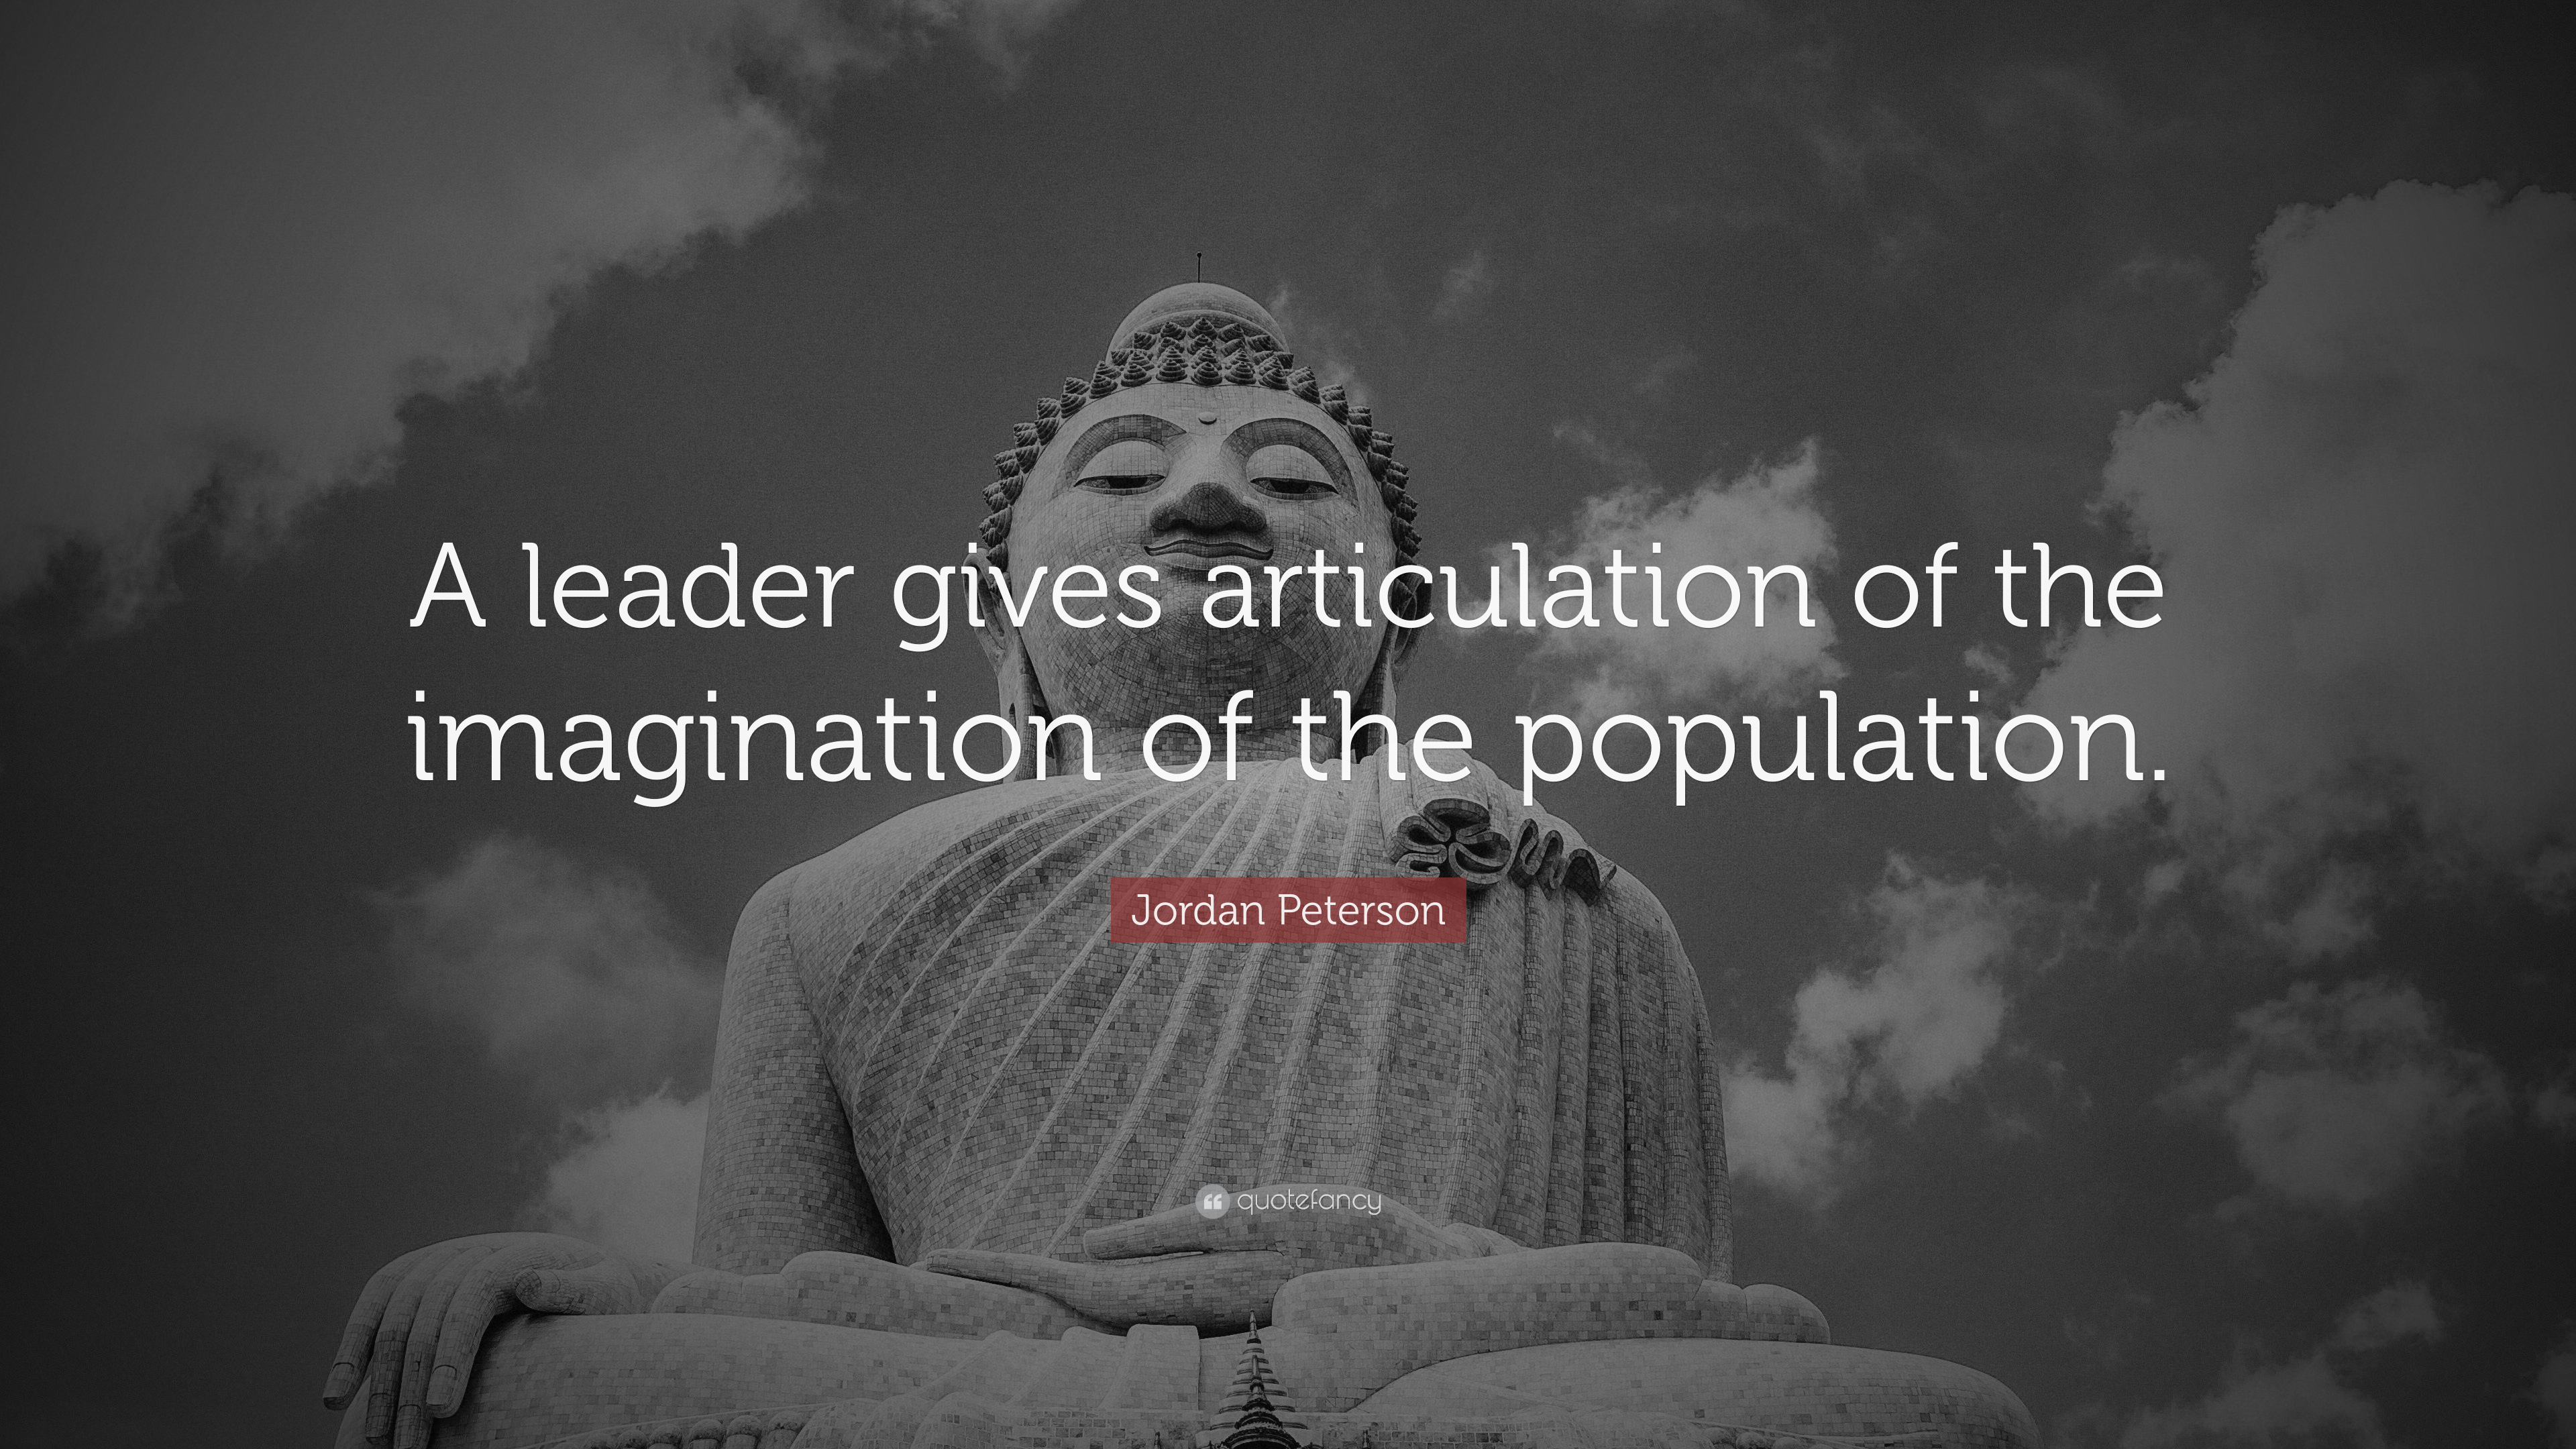 Inspiring Quotes With Wallpapers Jordan Peterson Quote A Leader Gives Articulation Of The